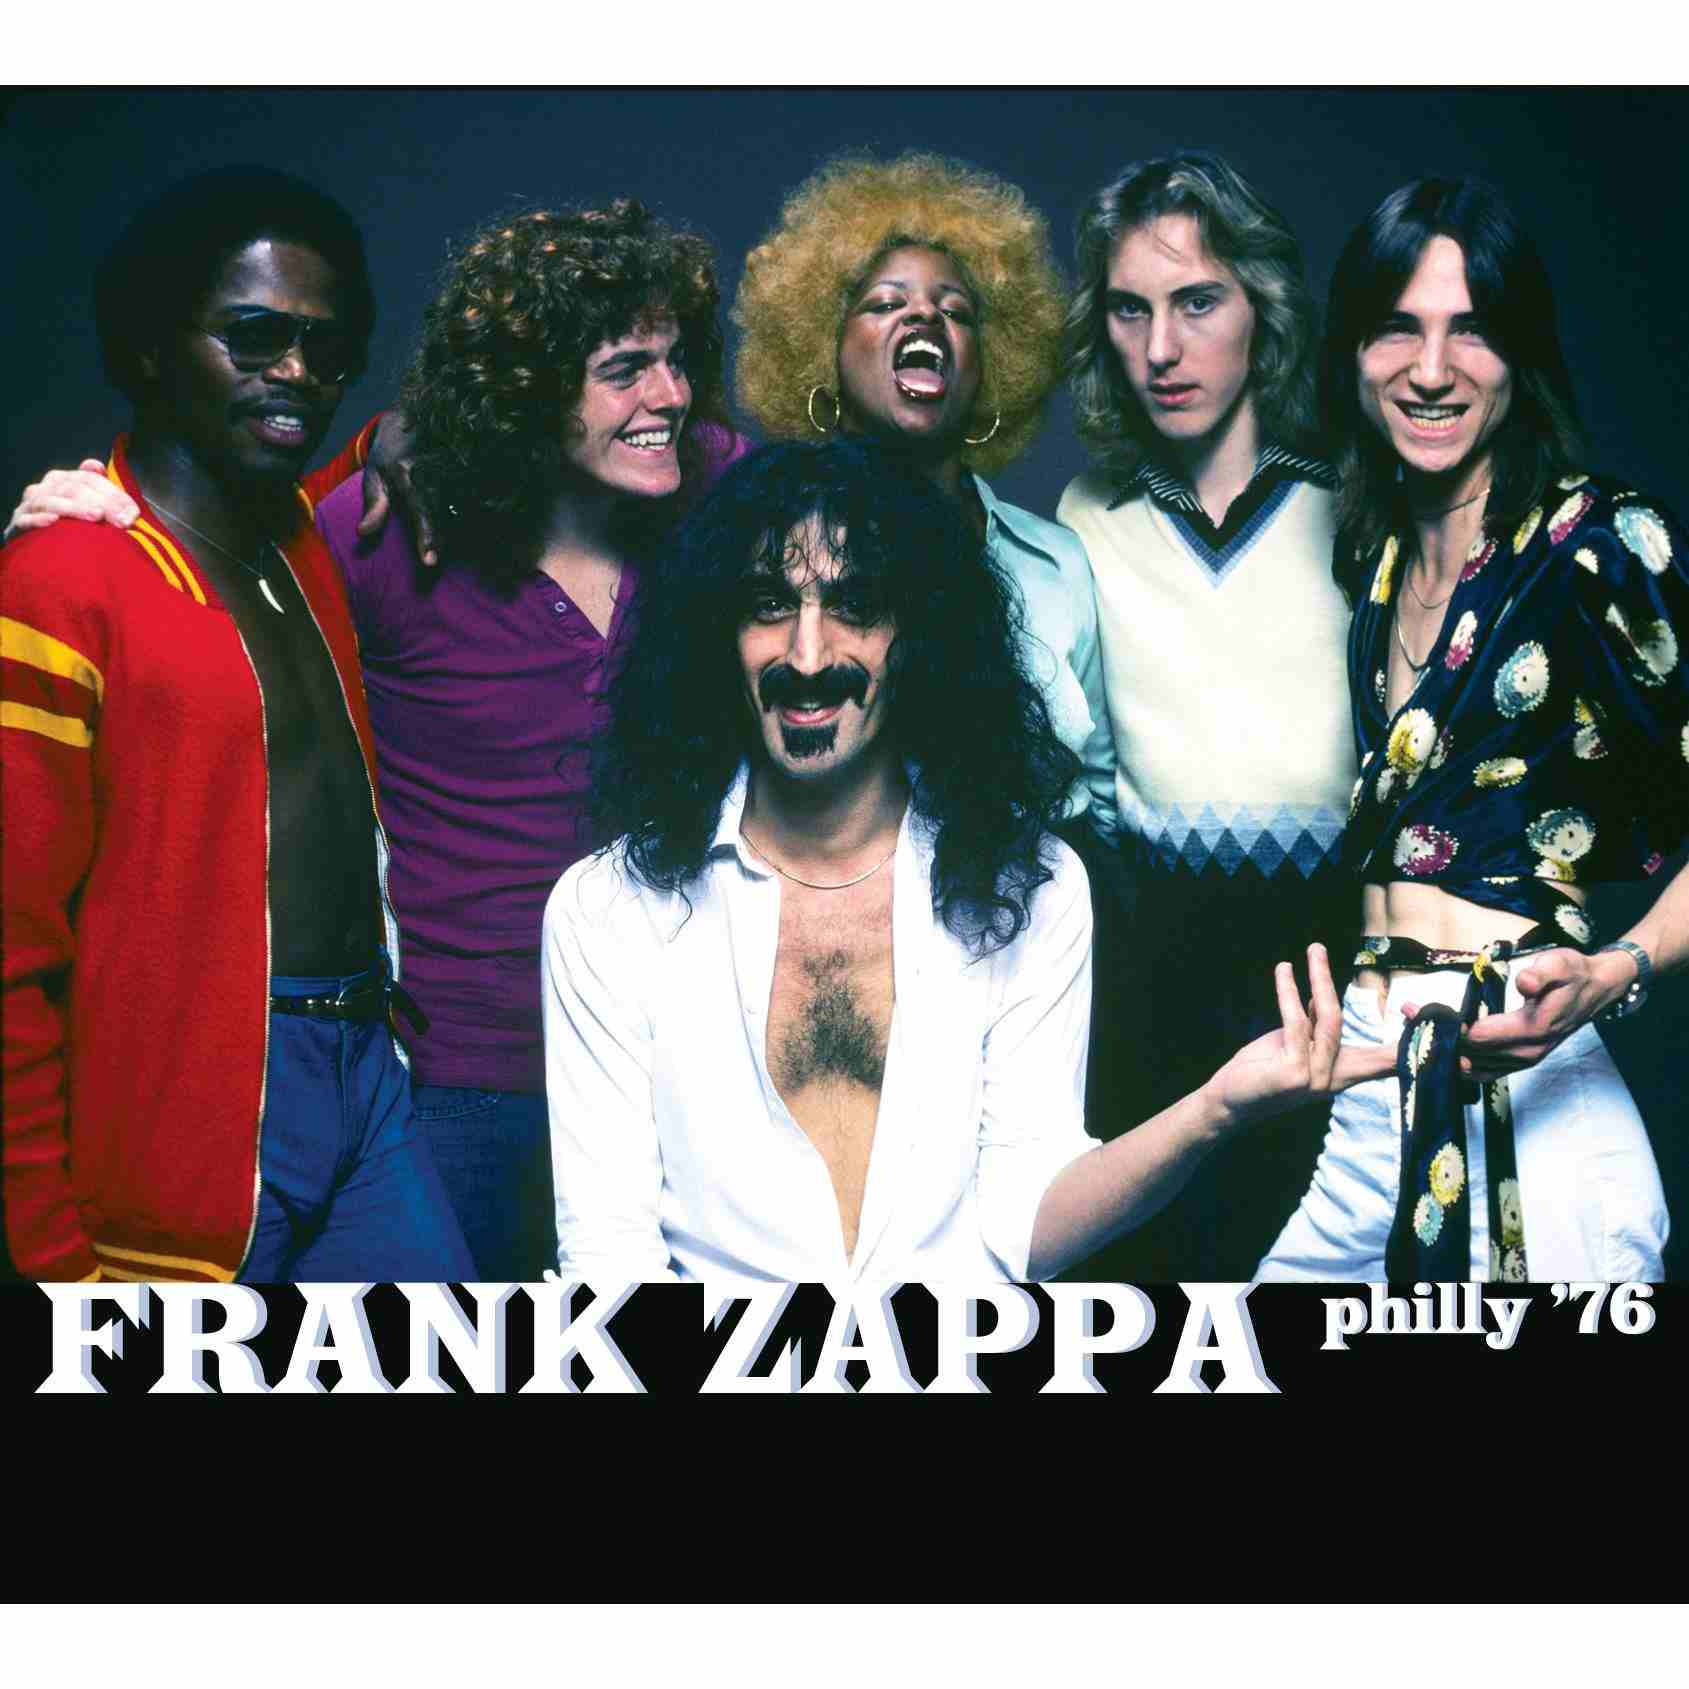 Frank Zappa - Philly'76